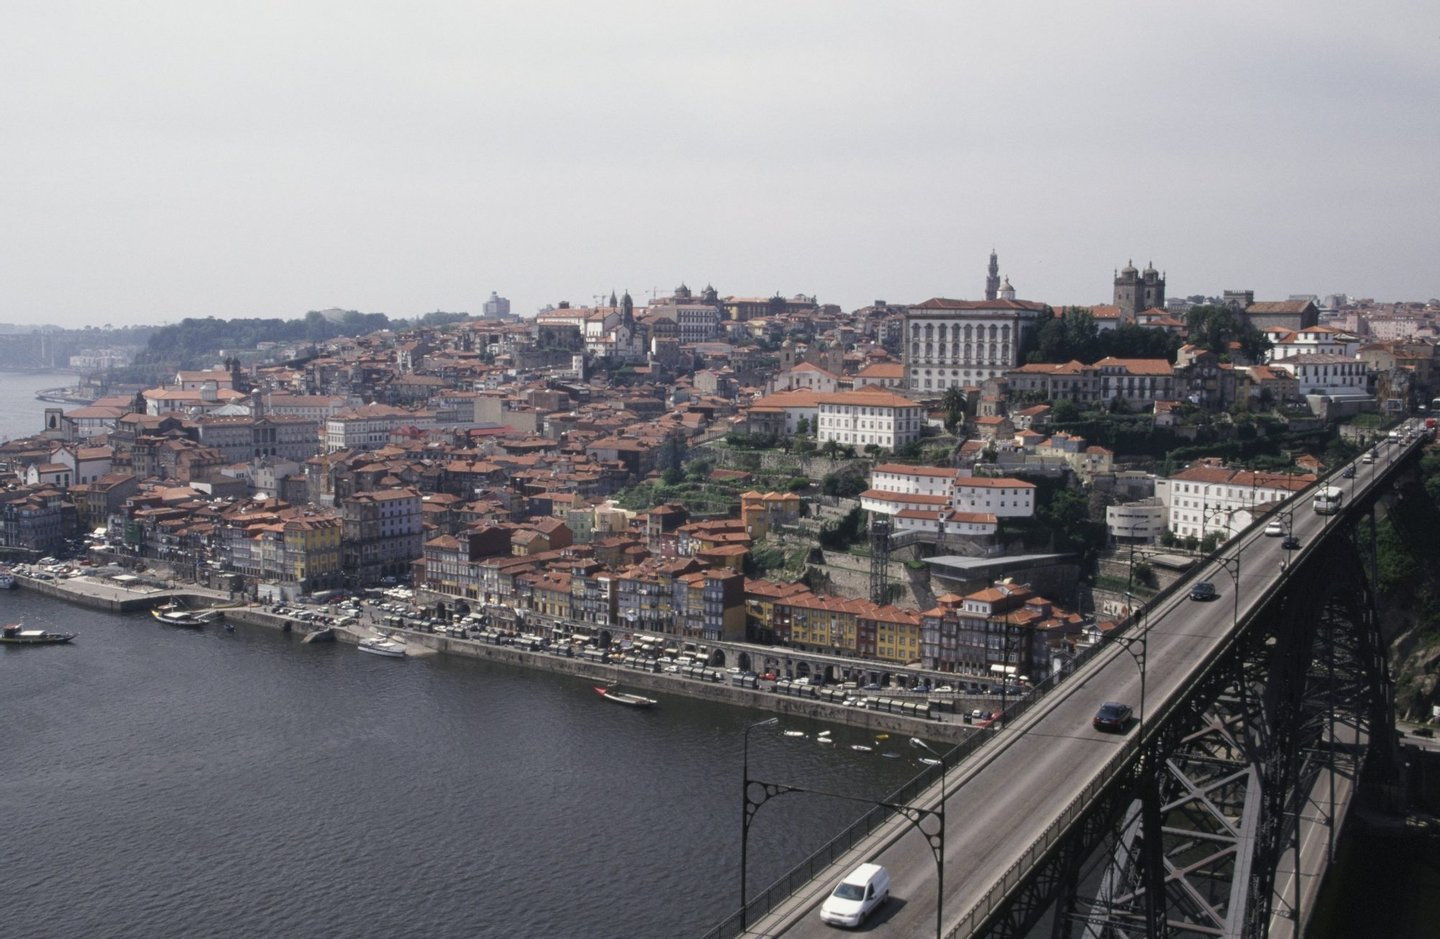 VILA NOVA DE GAIA, PORTUGAL - 2003: Portugal's historic city of Oporto is viewed from across the Douro River in this 2003 Vila Nova de Gaia, Portugal, photo. (Photo by George Rose/Getty Images)